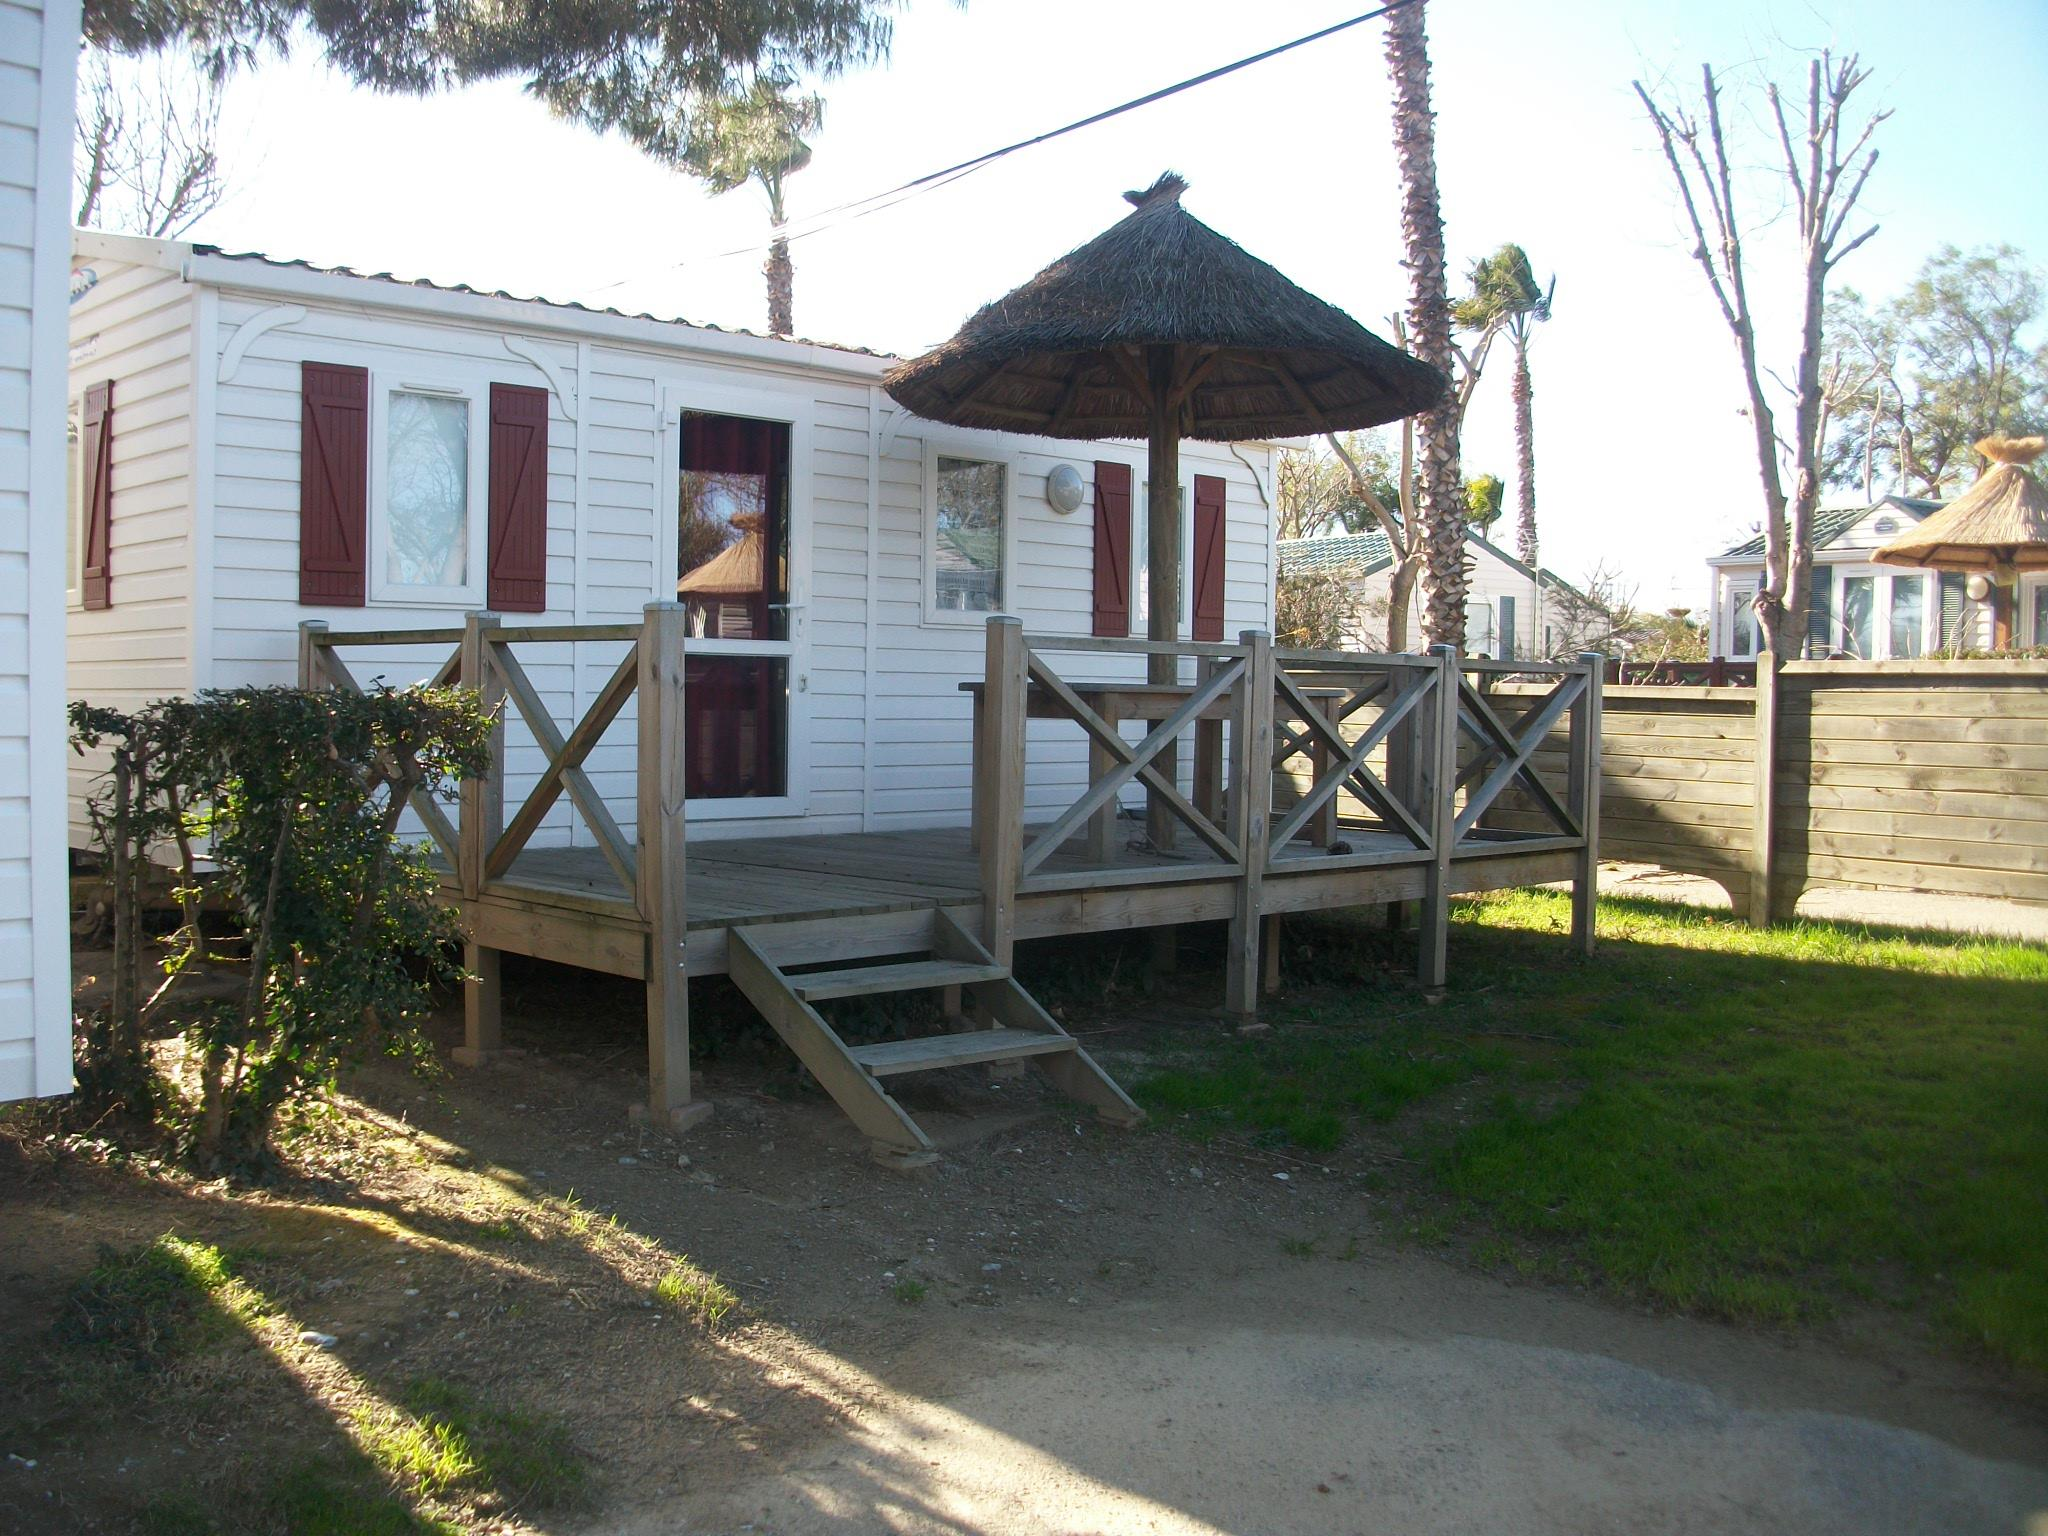 Location - Mobil-Home Budget Standard 2 Chambres Tv + Wifi - Camping Les Galets